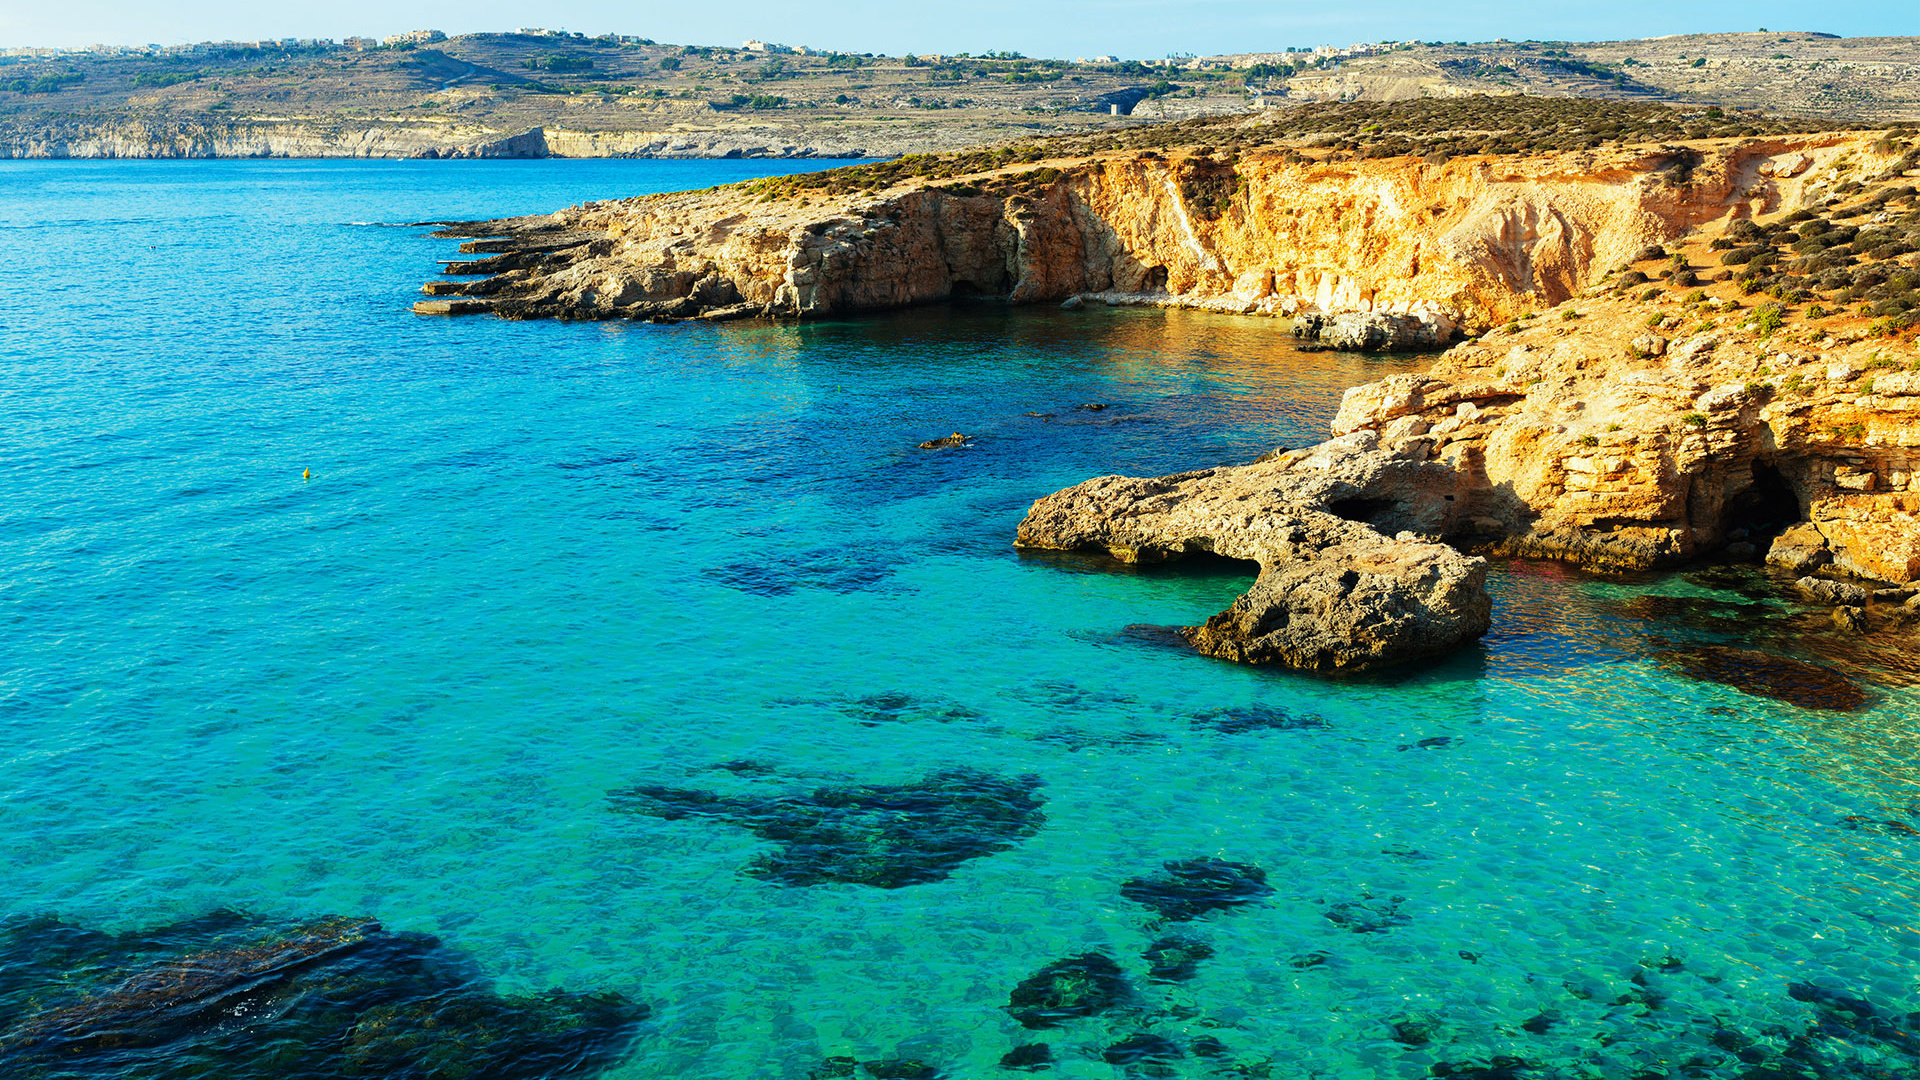 Photograph of Comino Island's gorgeous blue lagoon